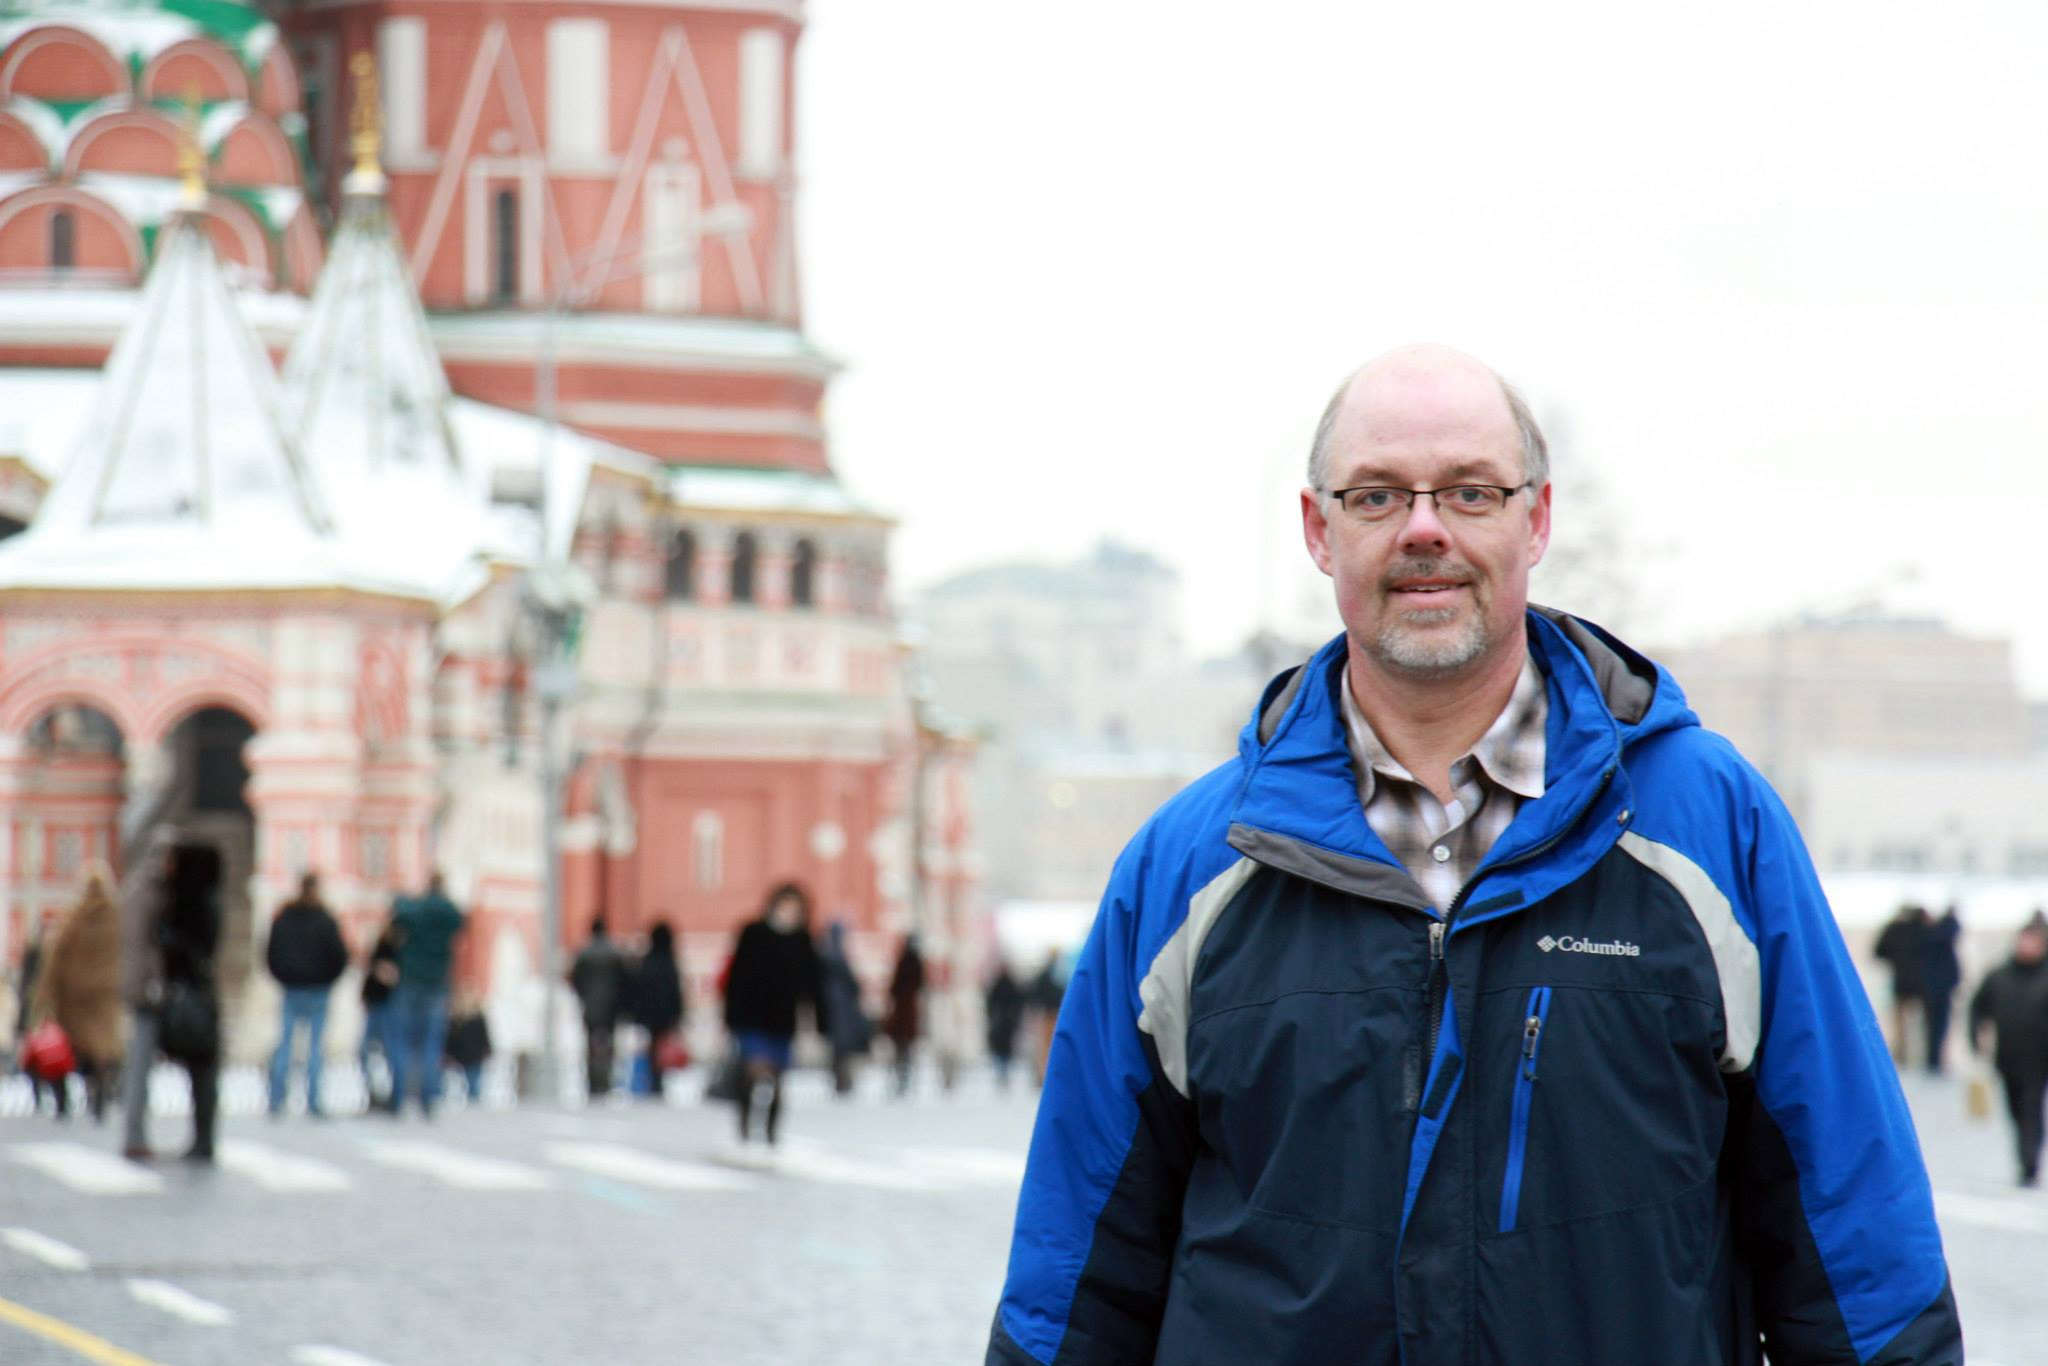 MNN's Greg Yoder in Red Square in February 2014. He shares this commentary on the Russia/Ukraine conflict.